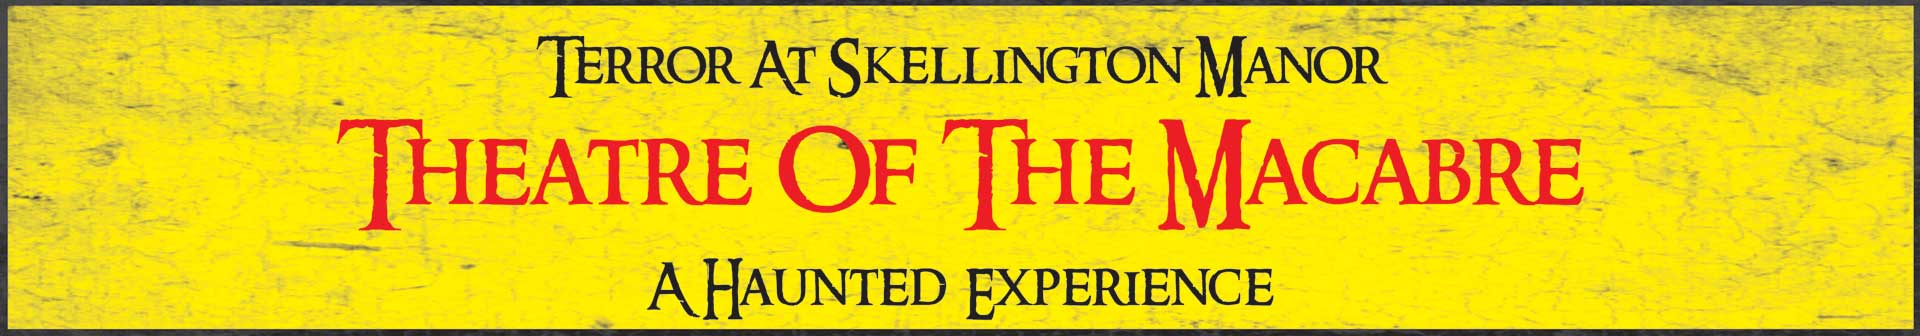 Terror At Skellington Manor: Theatre Of The Macabre